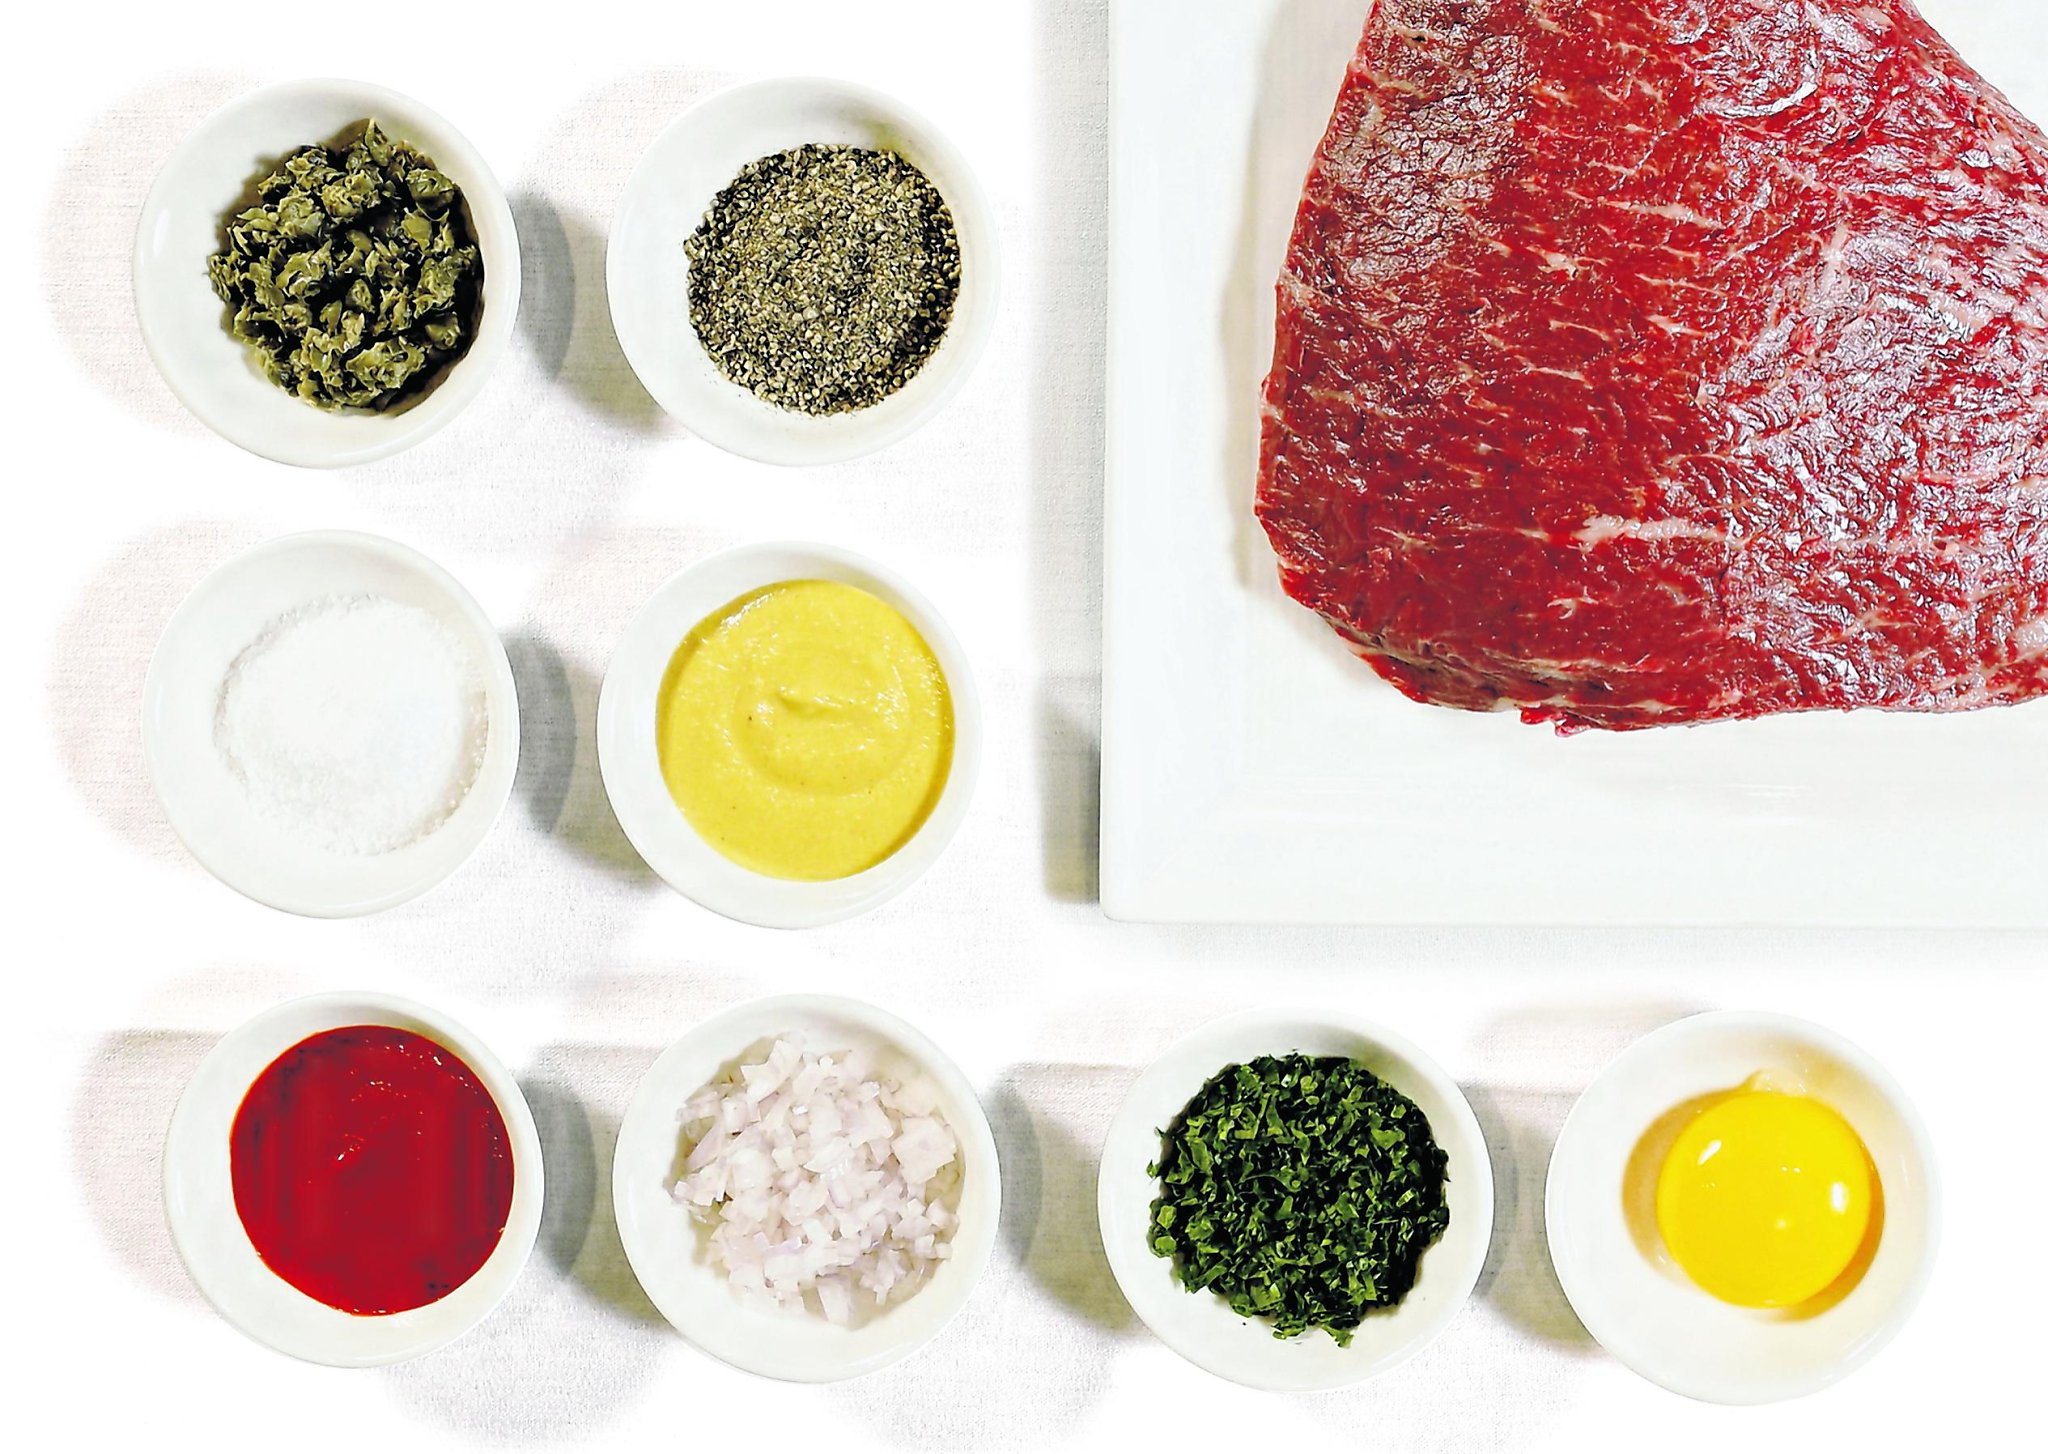 Diners have new love for classic steak tartare - SFGate